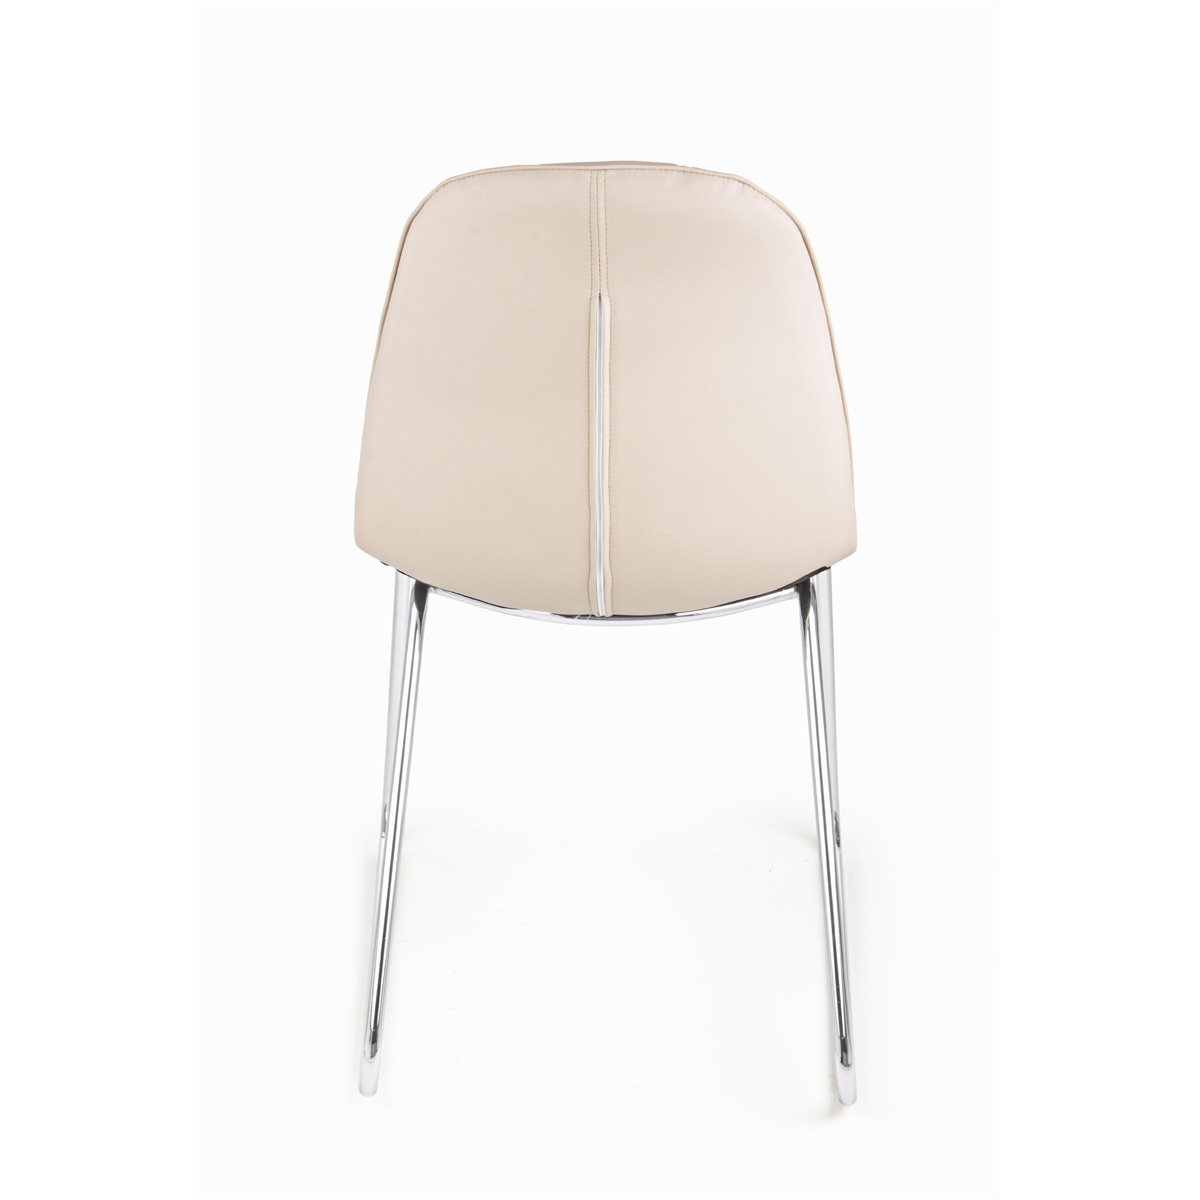 Photos 3: Bizzotto Chair in metal and eco-leather - tortora 0731665